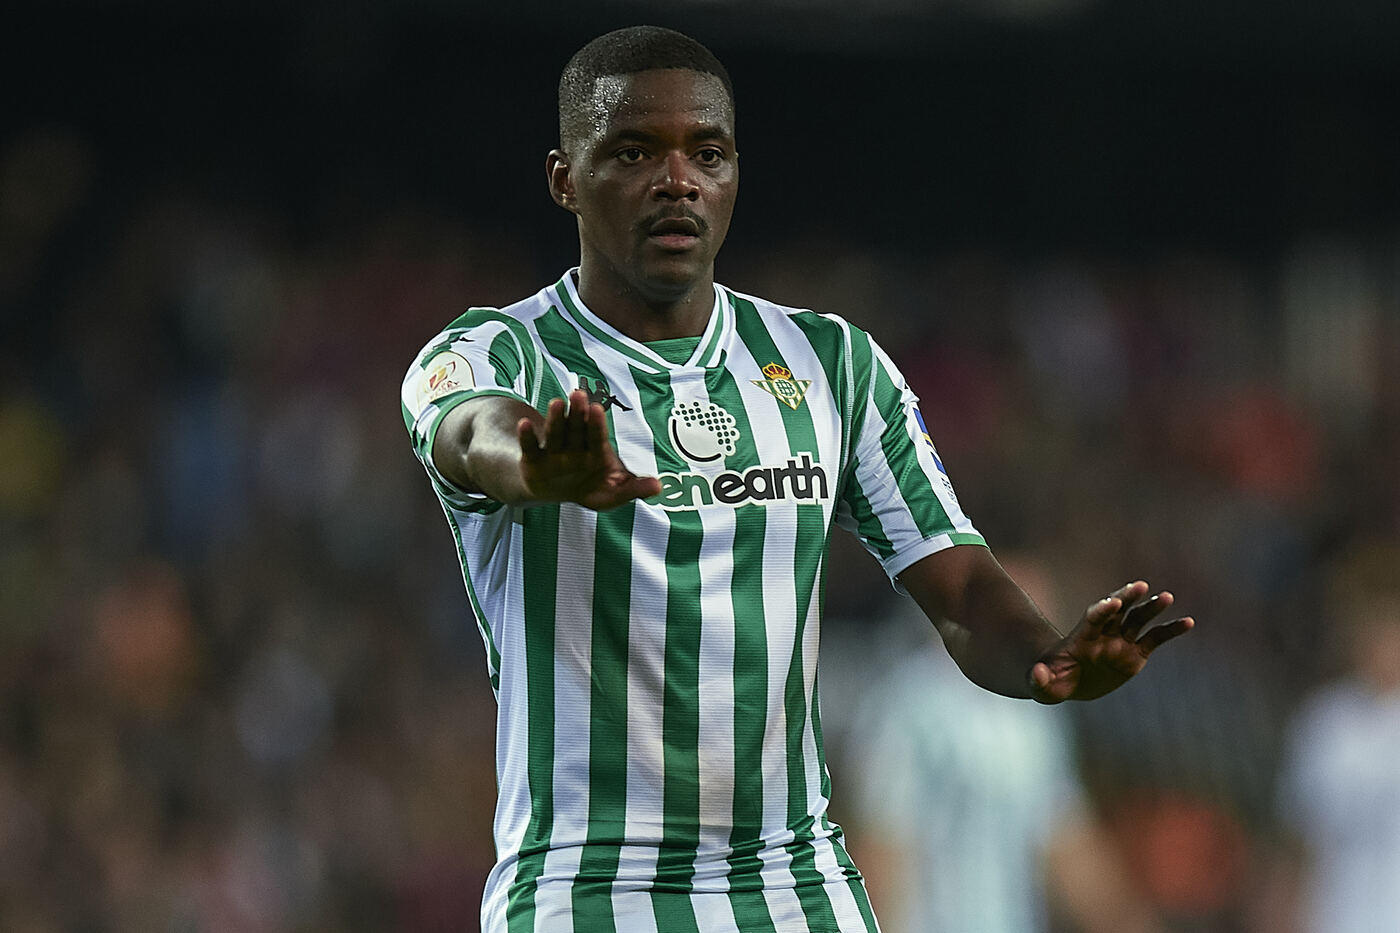 William Carvalho ha una grande somiglianza con un ex juventino...